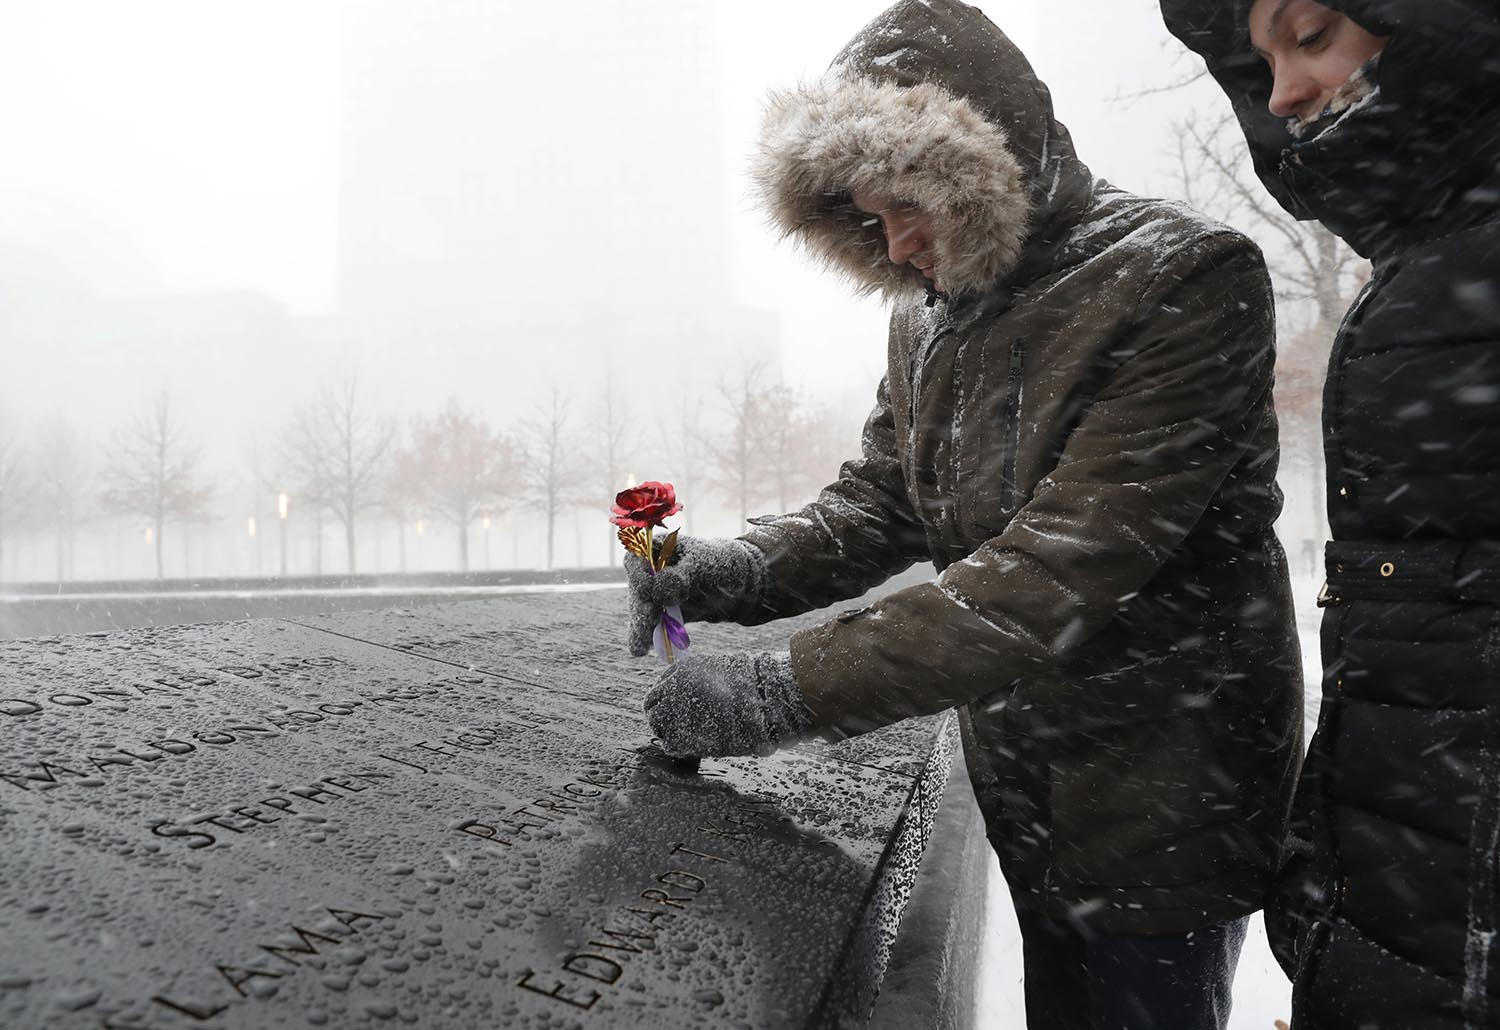 <div class='meta'><div class='origin-logo' data-origin='AP'></div><span class='caption-text' data-credit='AP Photo/Kathy Willens'>Tara Chandler, right, watches her husband Joshua place a metal rose on the border of one of the fountains at the National September 11 Memorial and Museum in New York, Jan 4, 2018.</span></div>